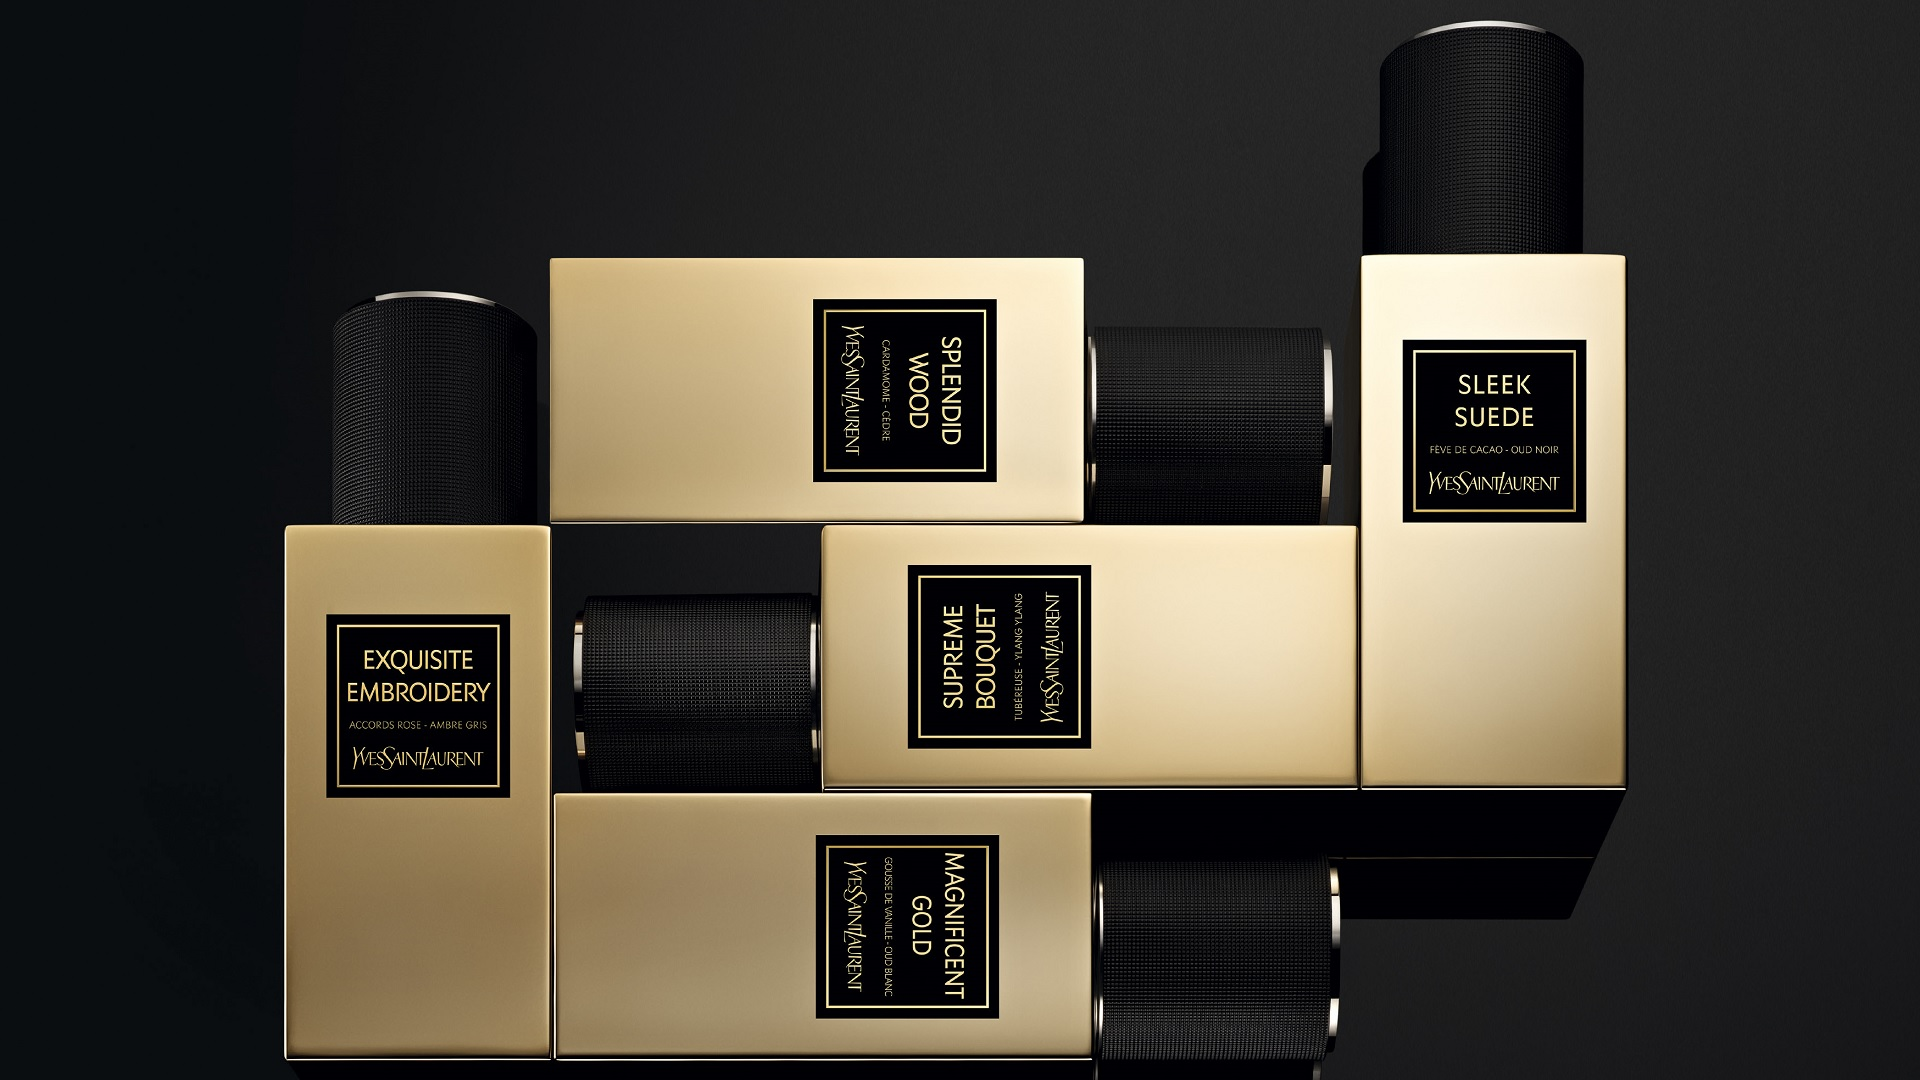 COLLECTION ORIENTALE, LOS NUEVOS PERFUMES DE YVES SAINT LAURENT